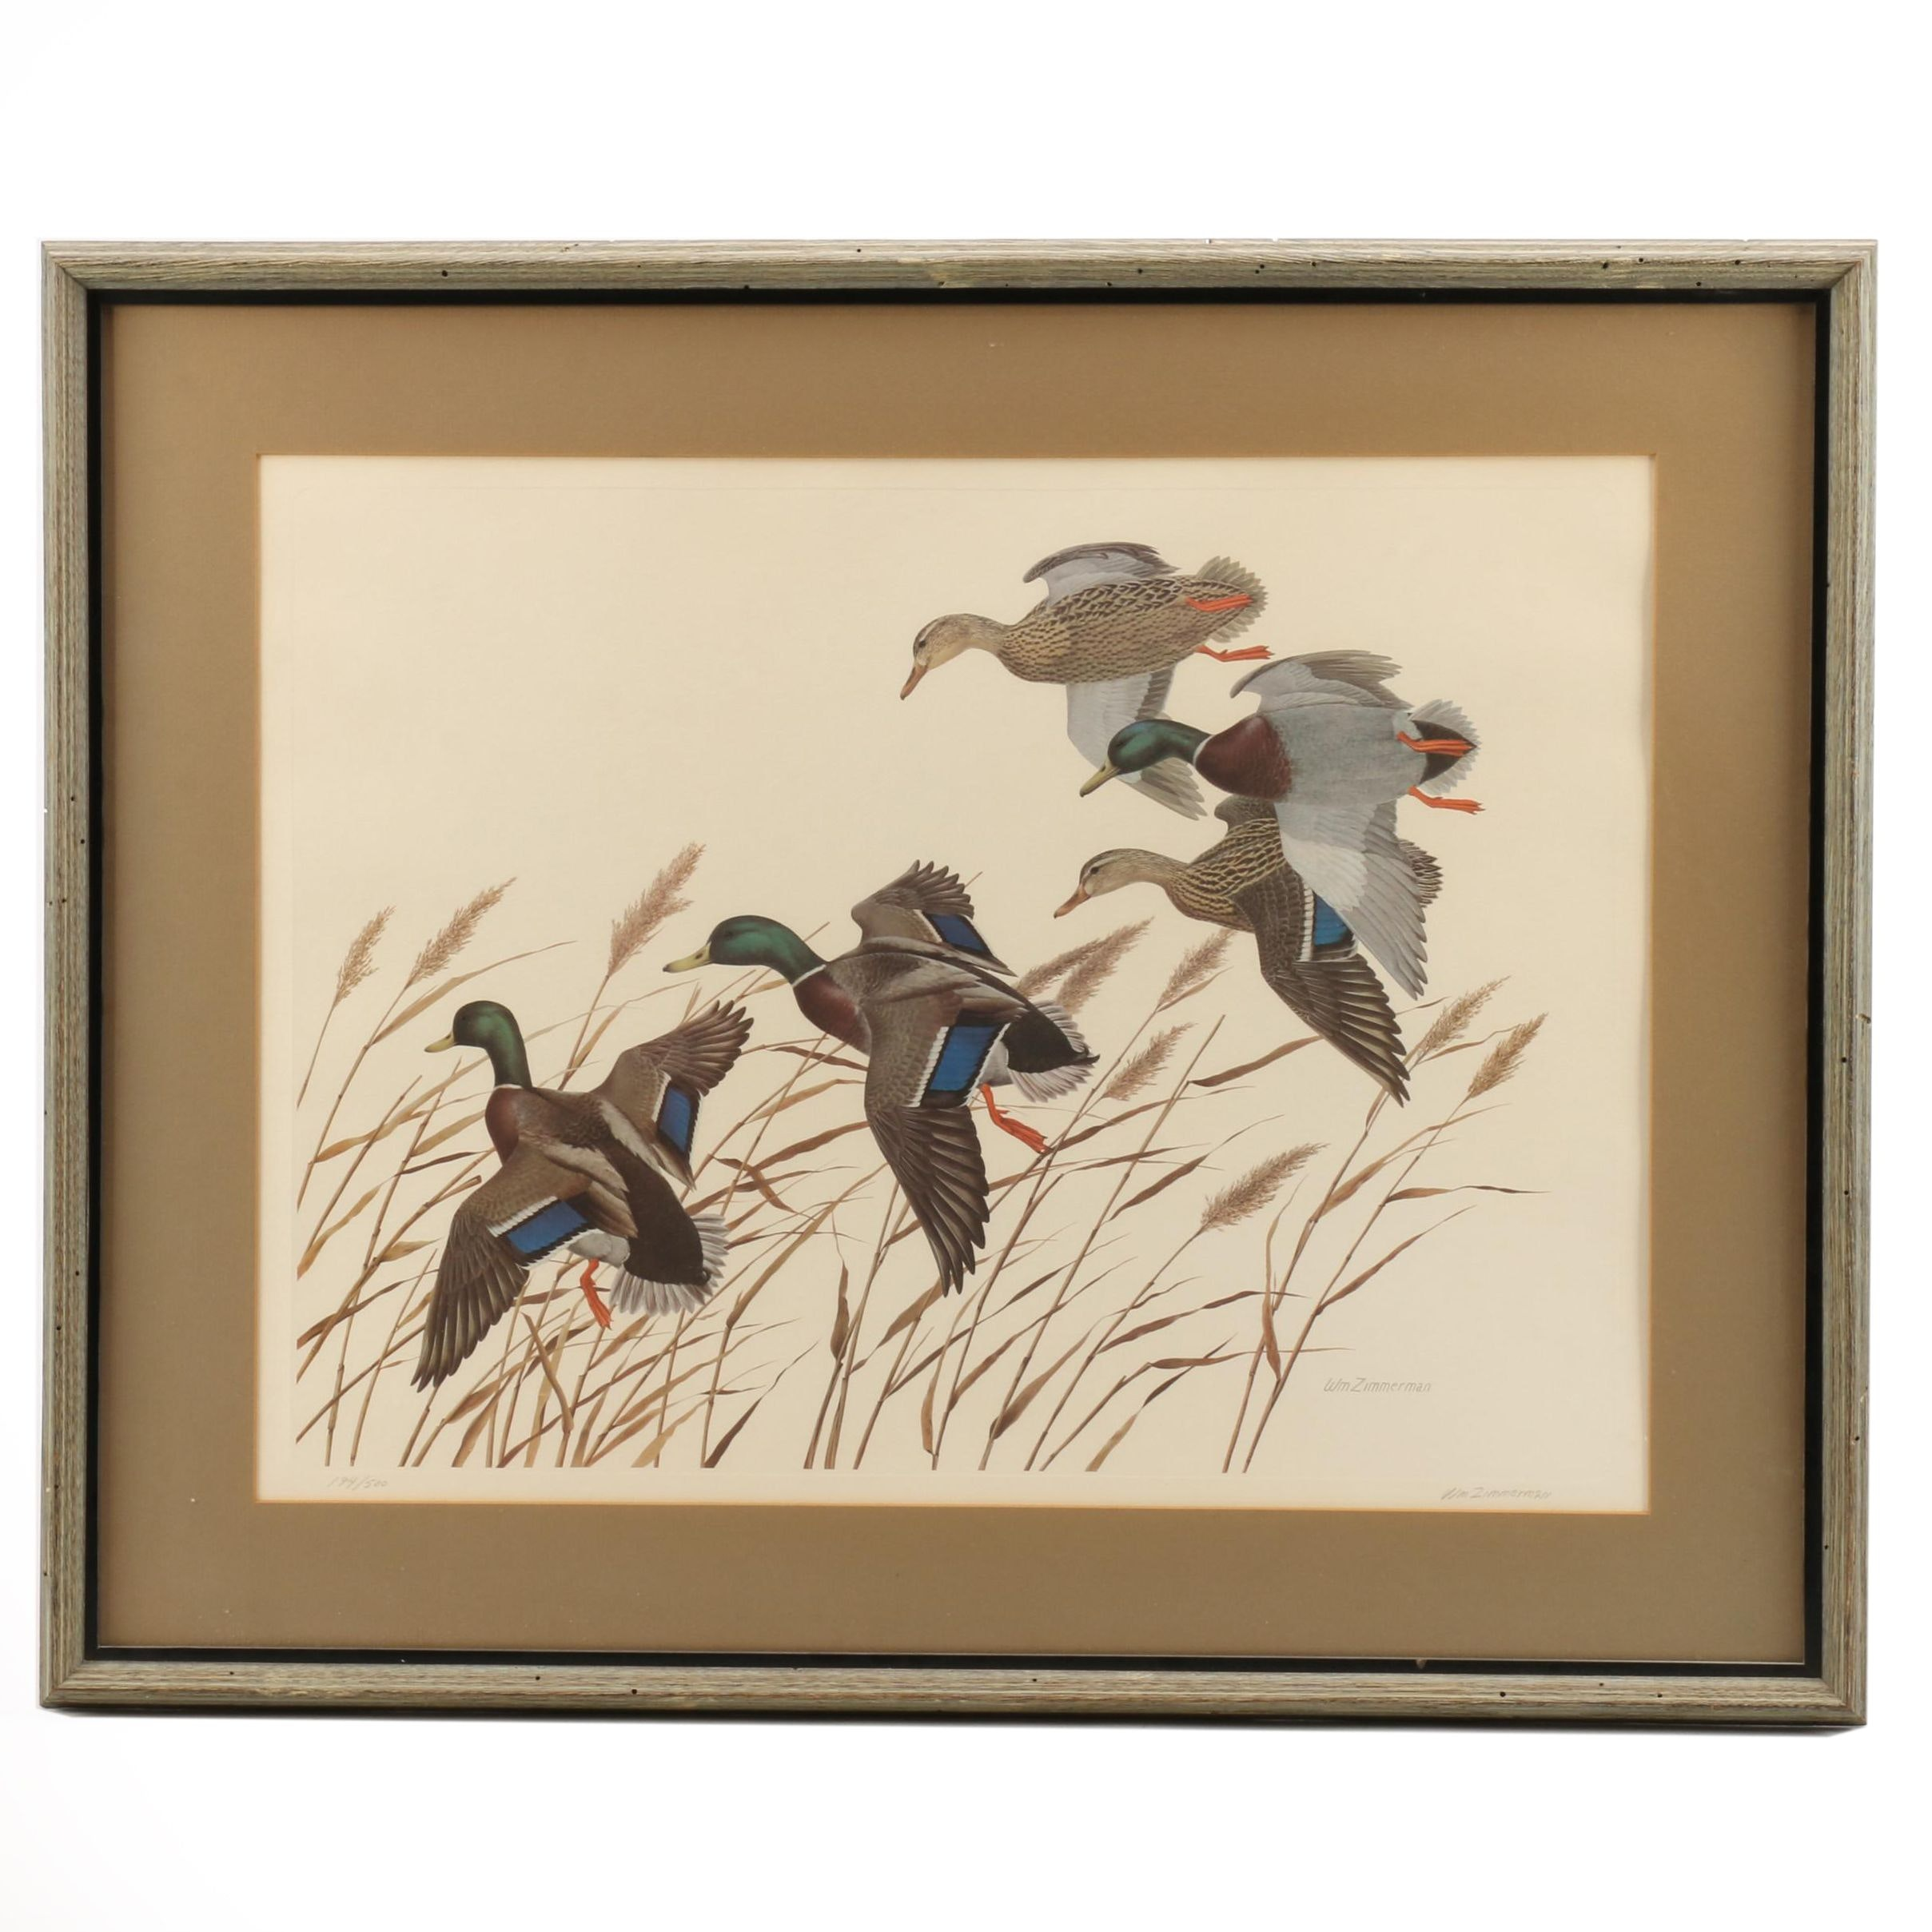 William Zimmerman Limited Edition Offset Lithograph of Ducks in Flight